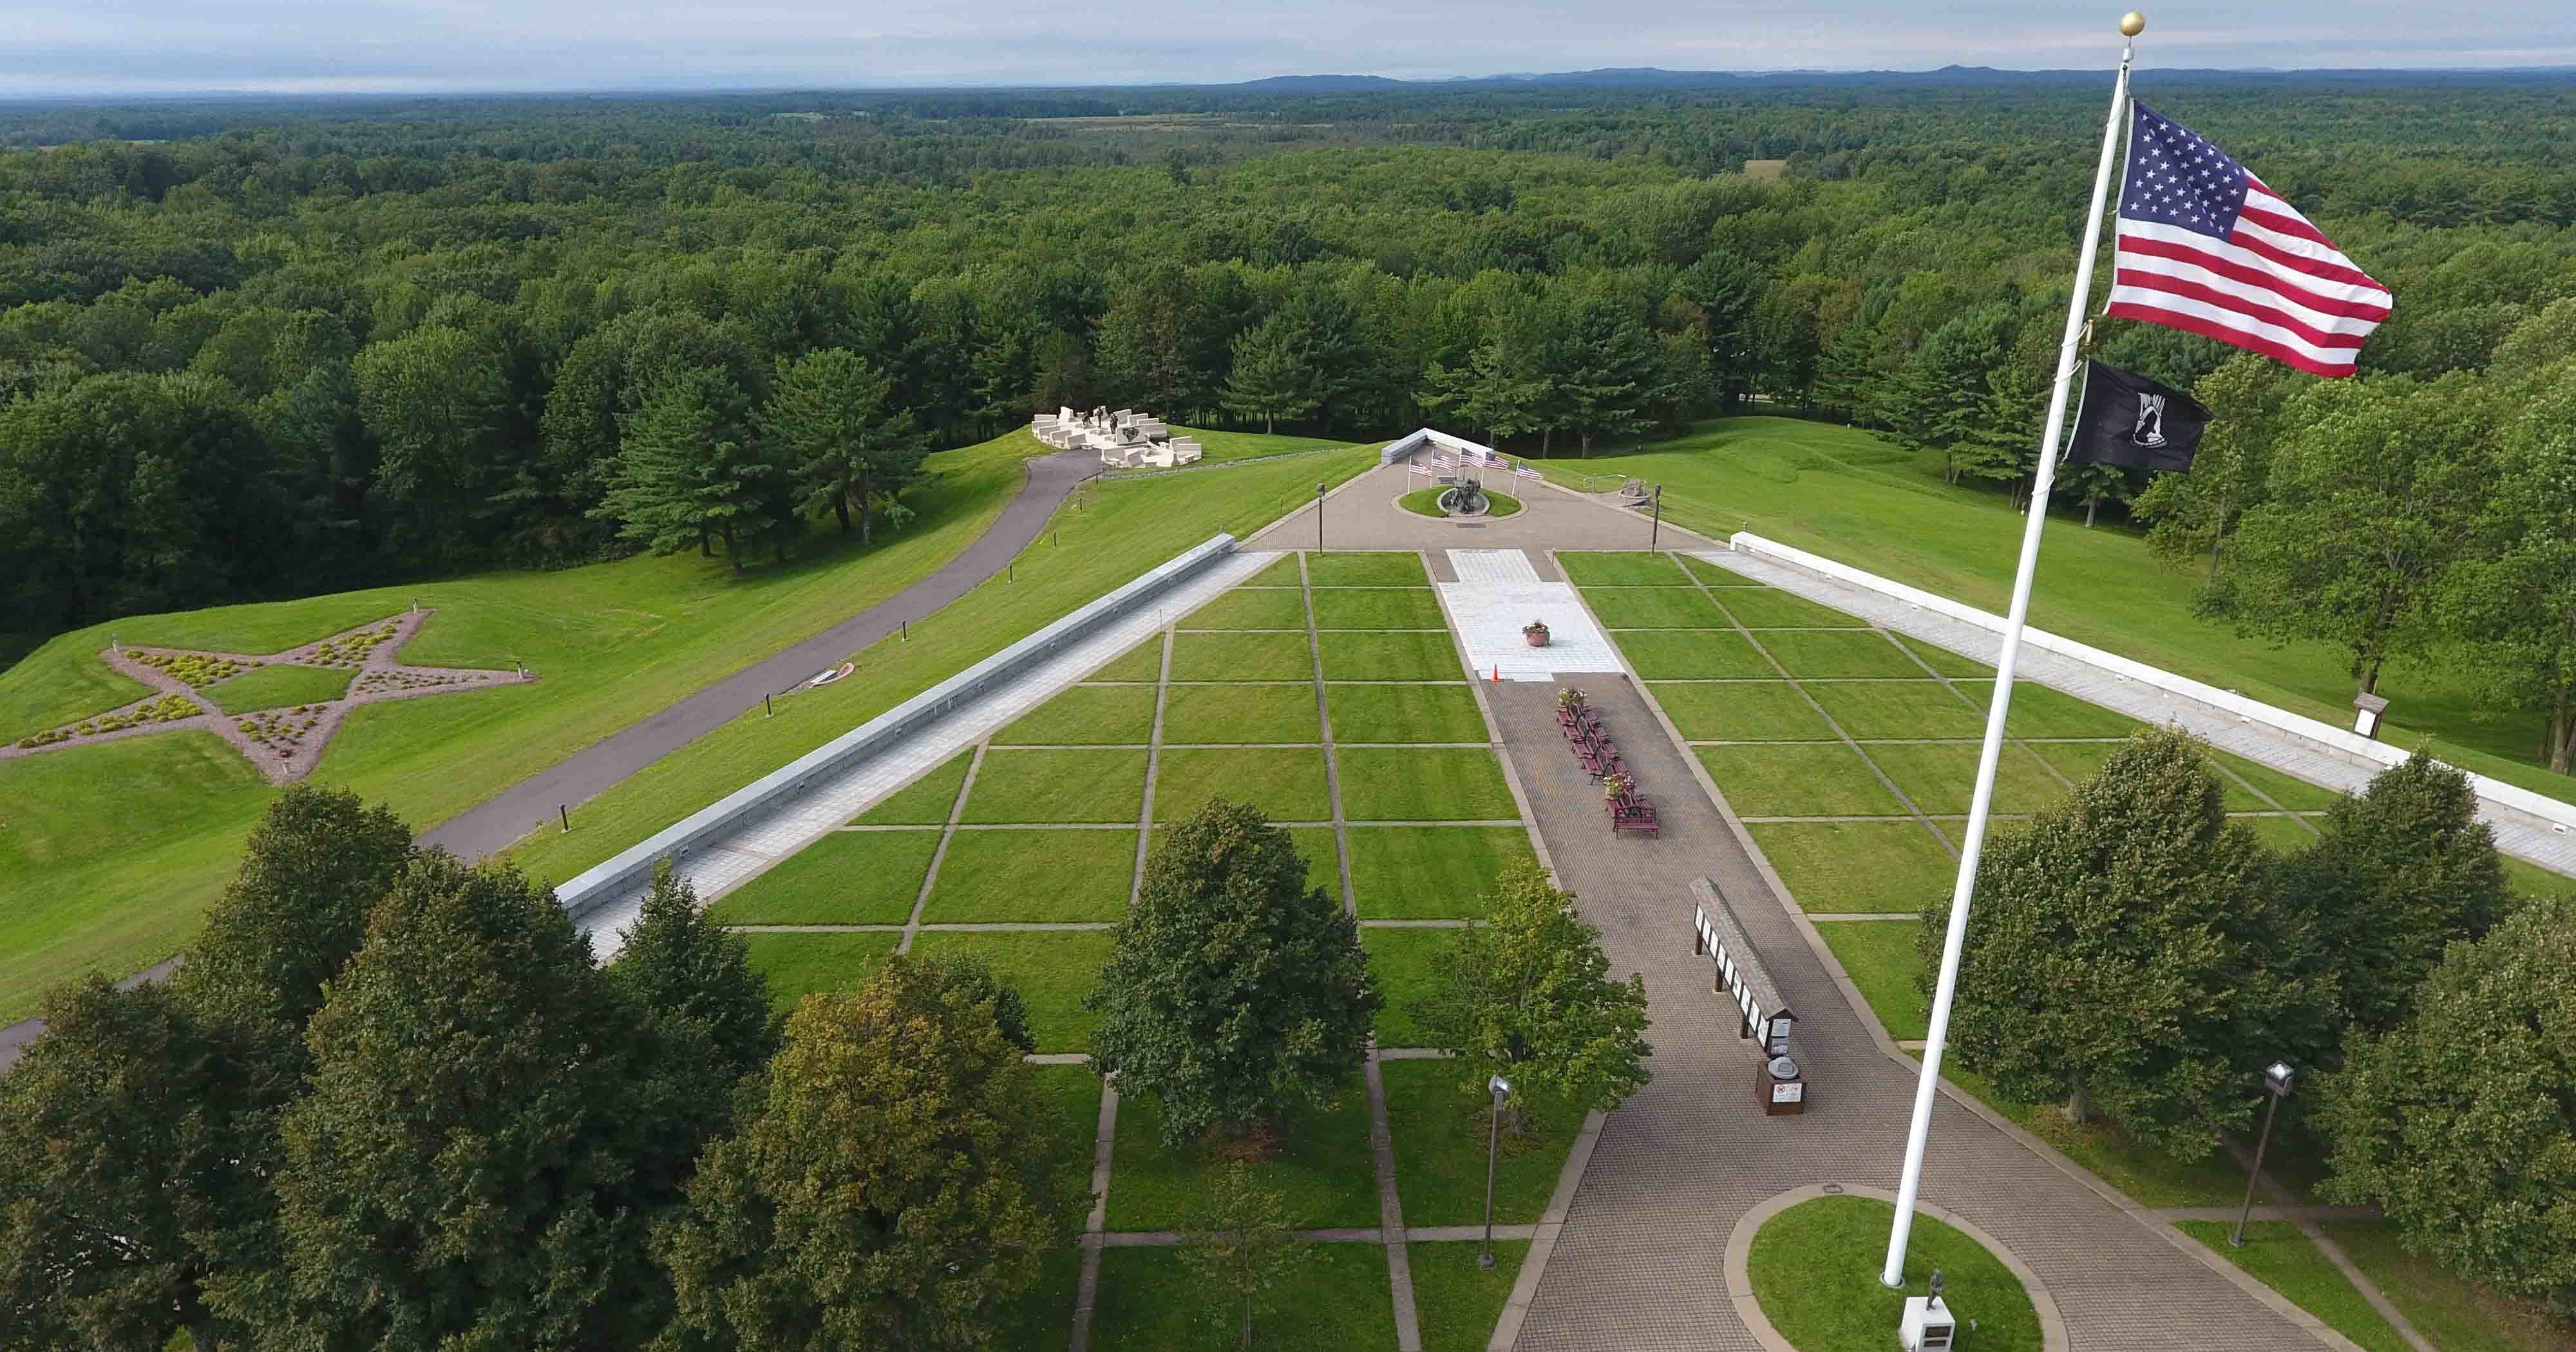 The Highground Veterans Memorial Project